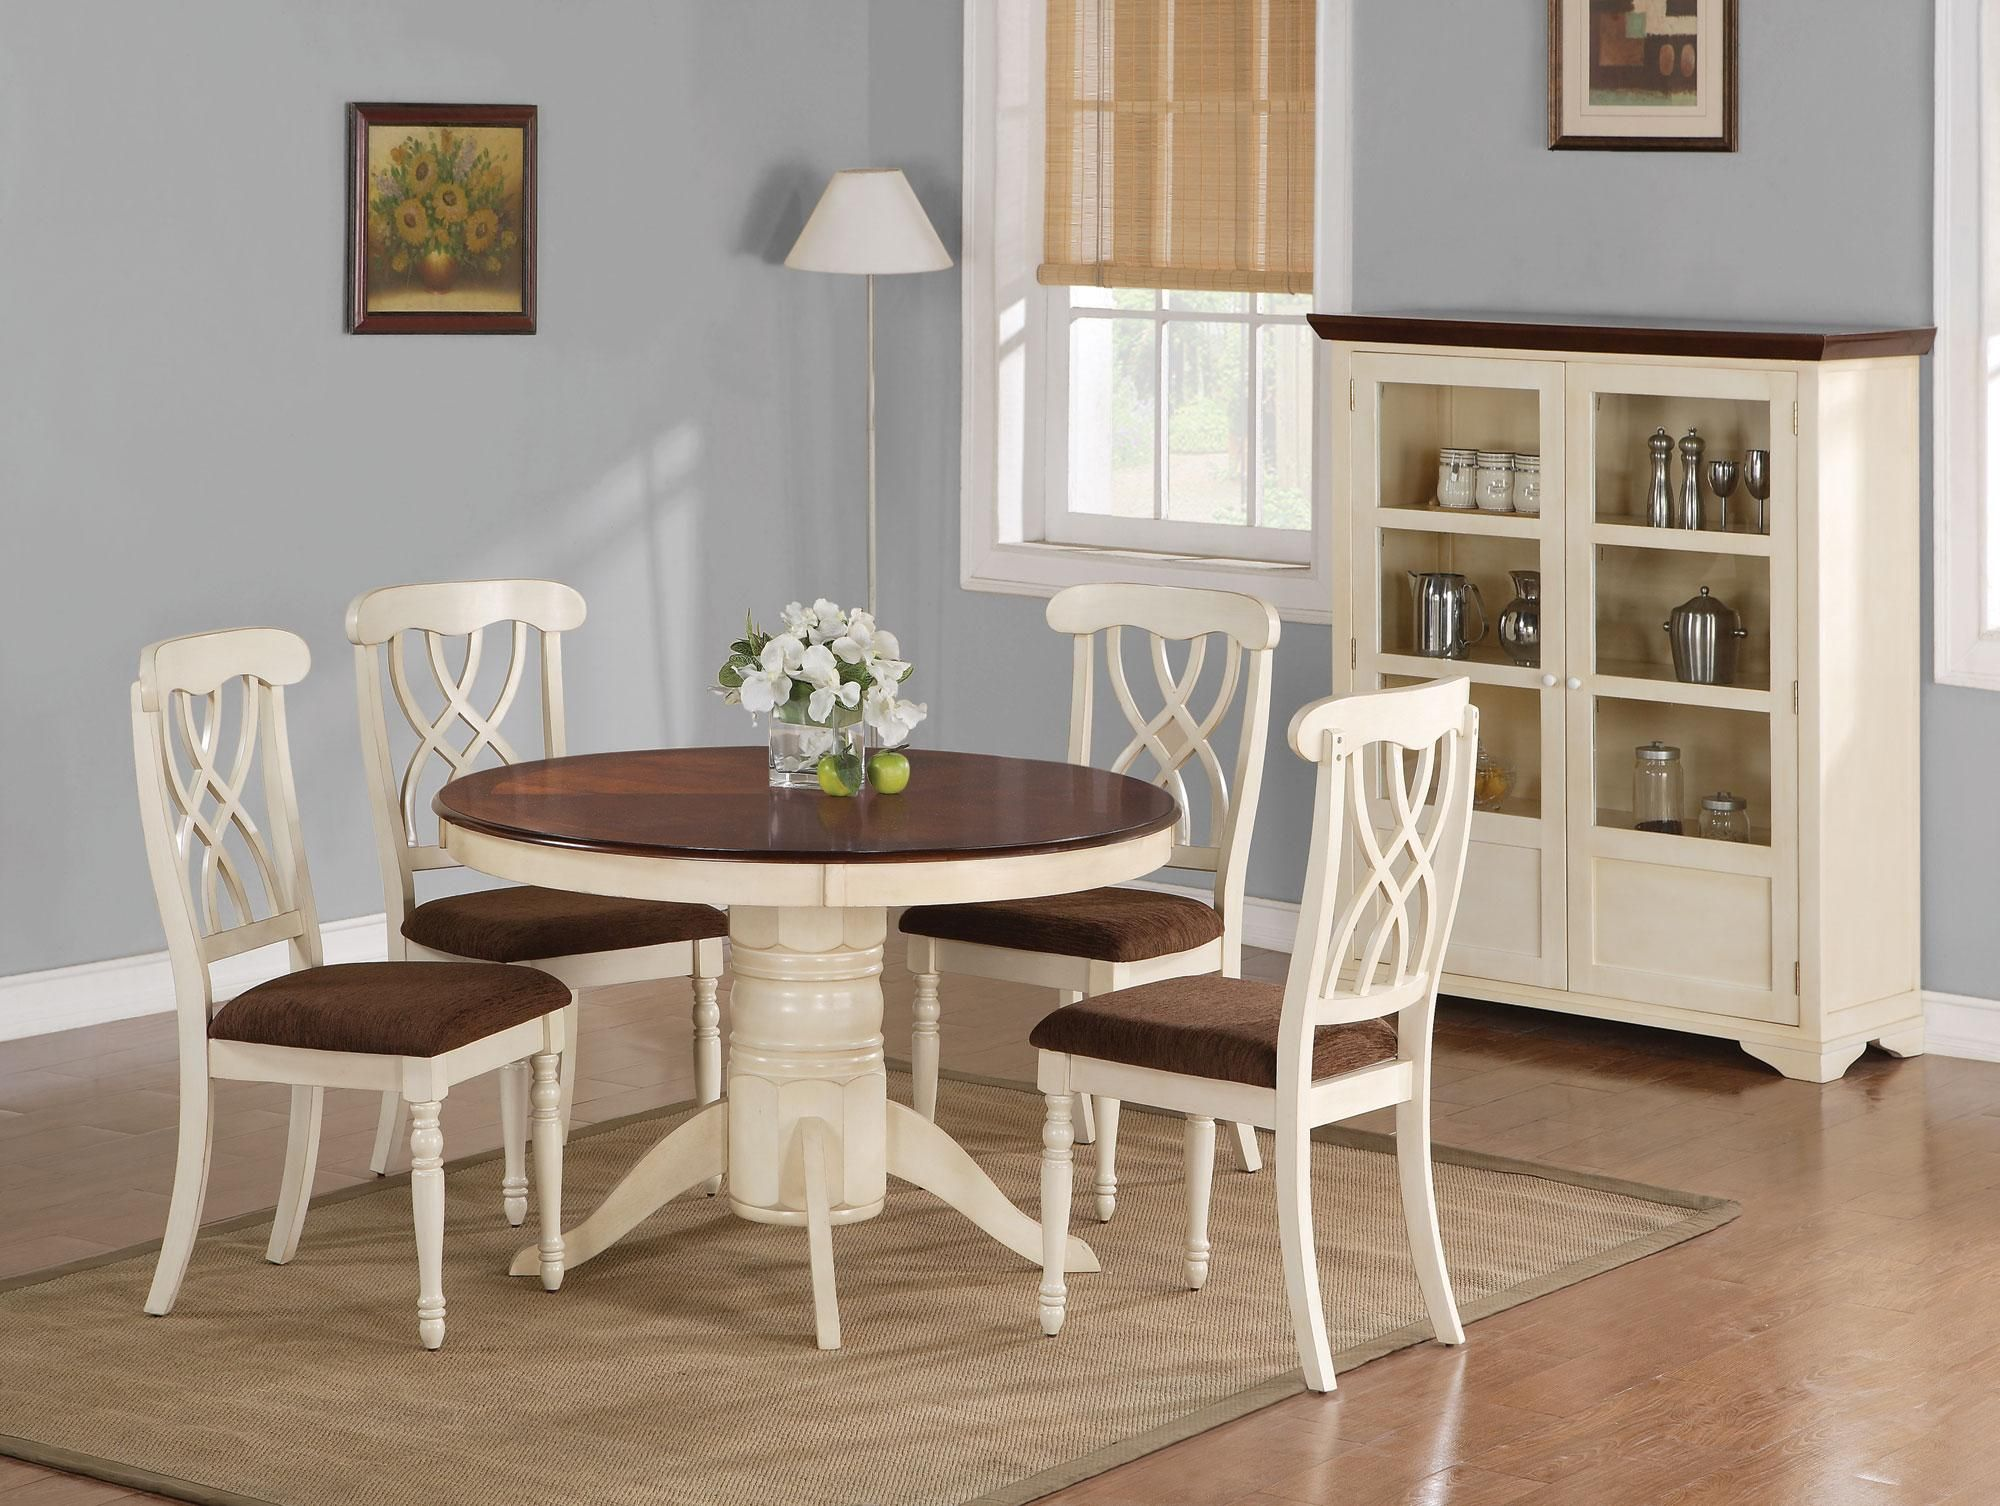 Brynwood white 5 pc round dining set dining room sets colors - White Dining Room Sets 17 Best Ideas About Round Dining Tables On